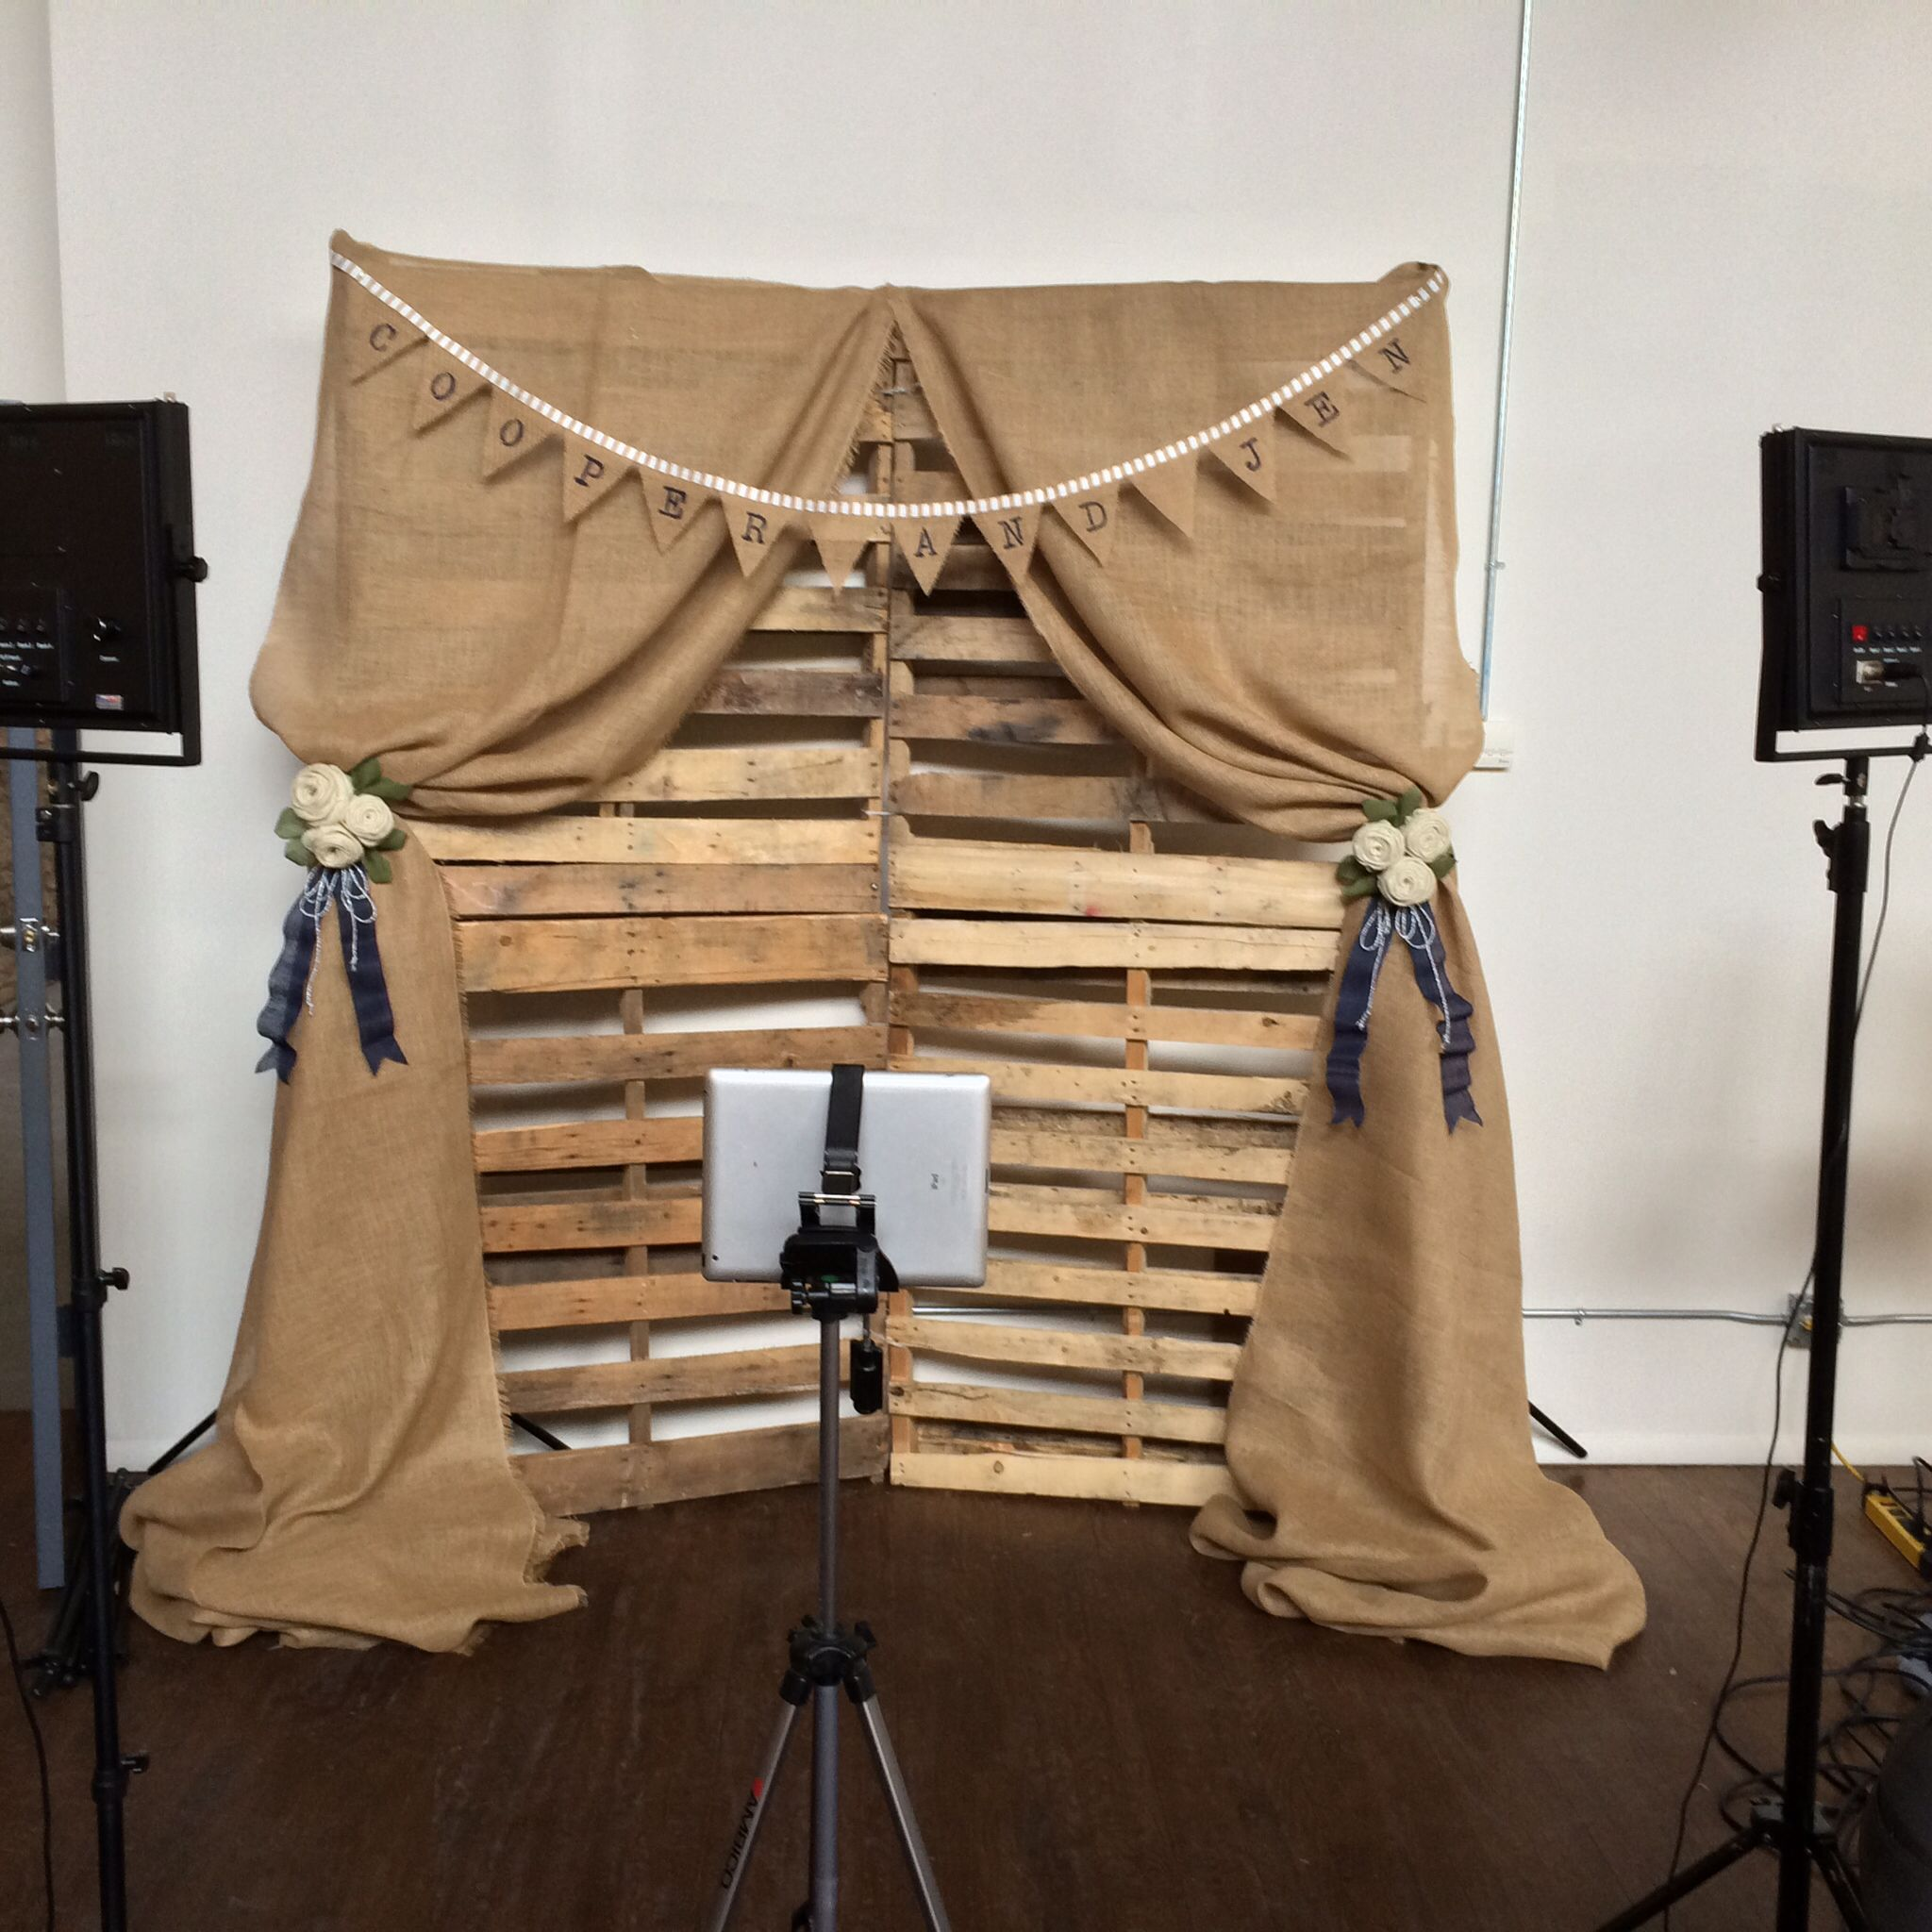 Photobooth Backdrop To Be Used For Photobooth It Is Funky And Suitable And Gives A Rustic Elegant Look Fotobox Hochzeit Hochzeit Hintergrund Hochzeitskulisse